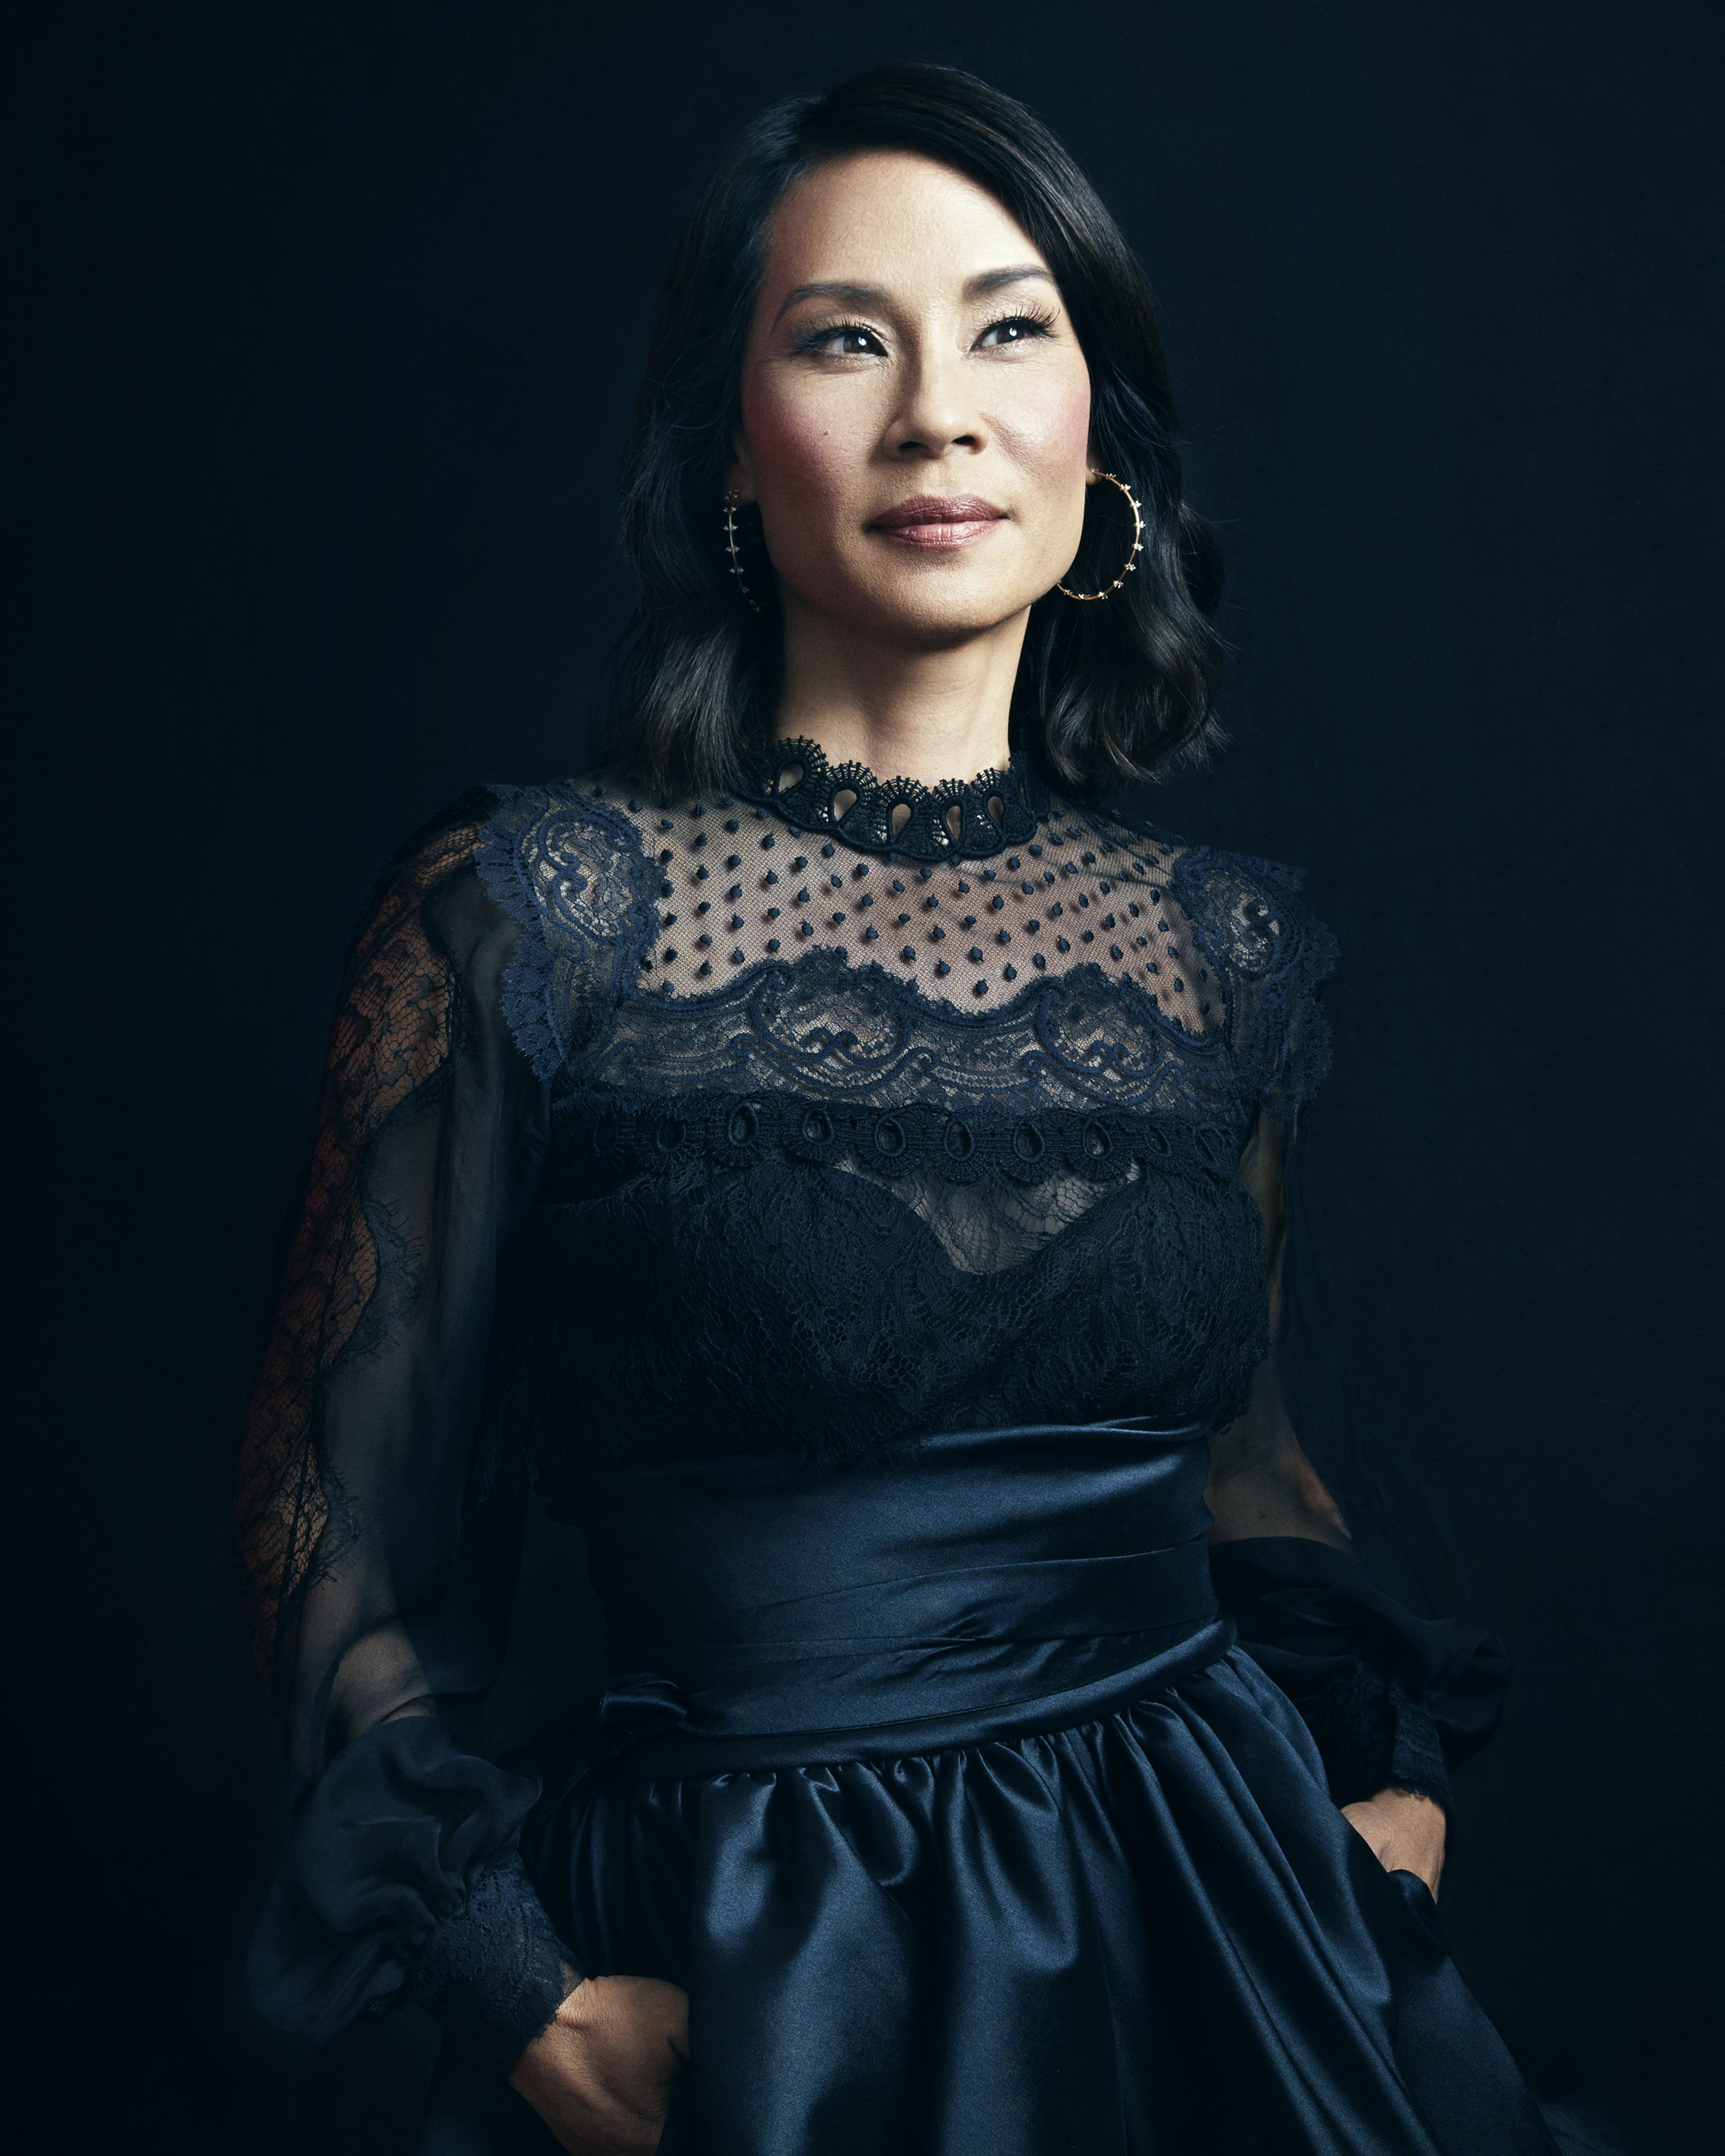 Lucy Liu teams up with Jane Walker by Johnnie Walker for First Women campaign celebrating and inspiring women breaking boundaries.